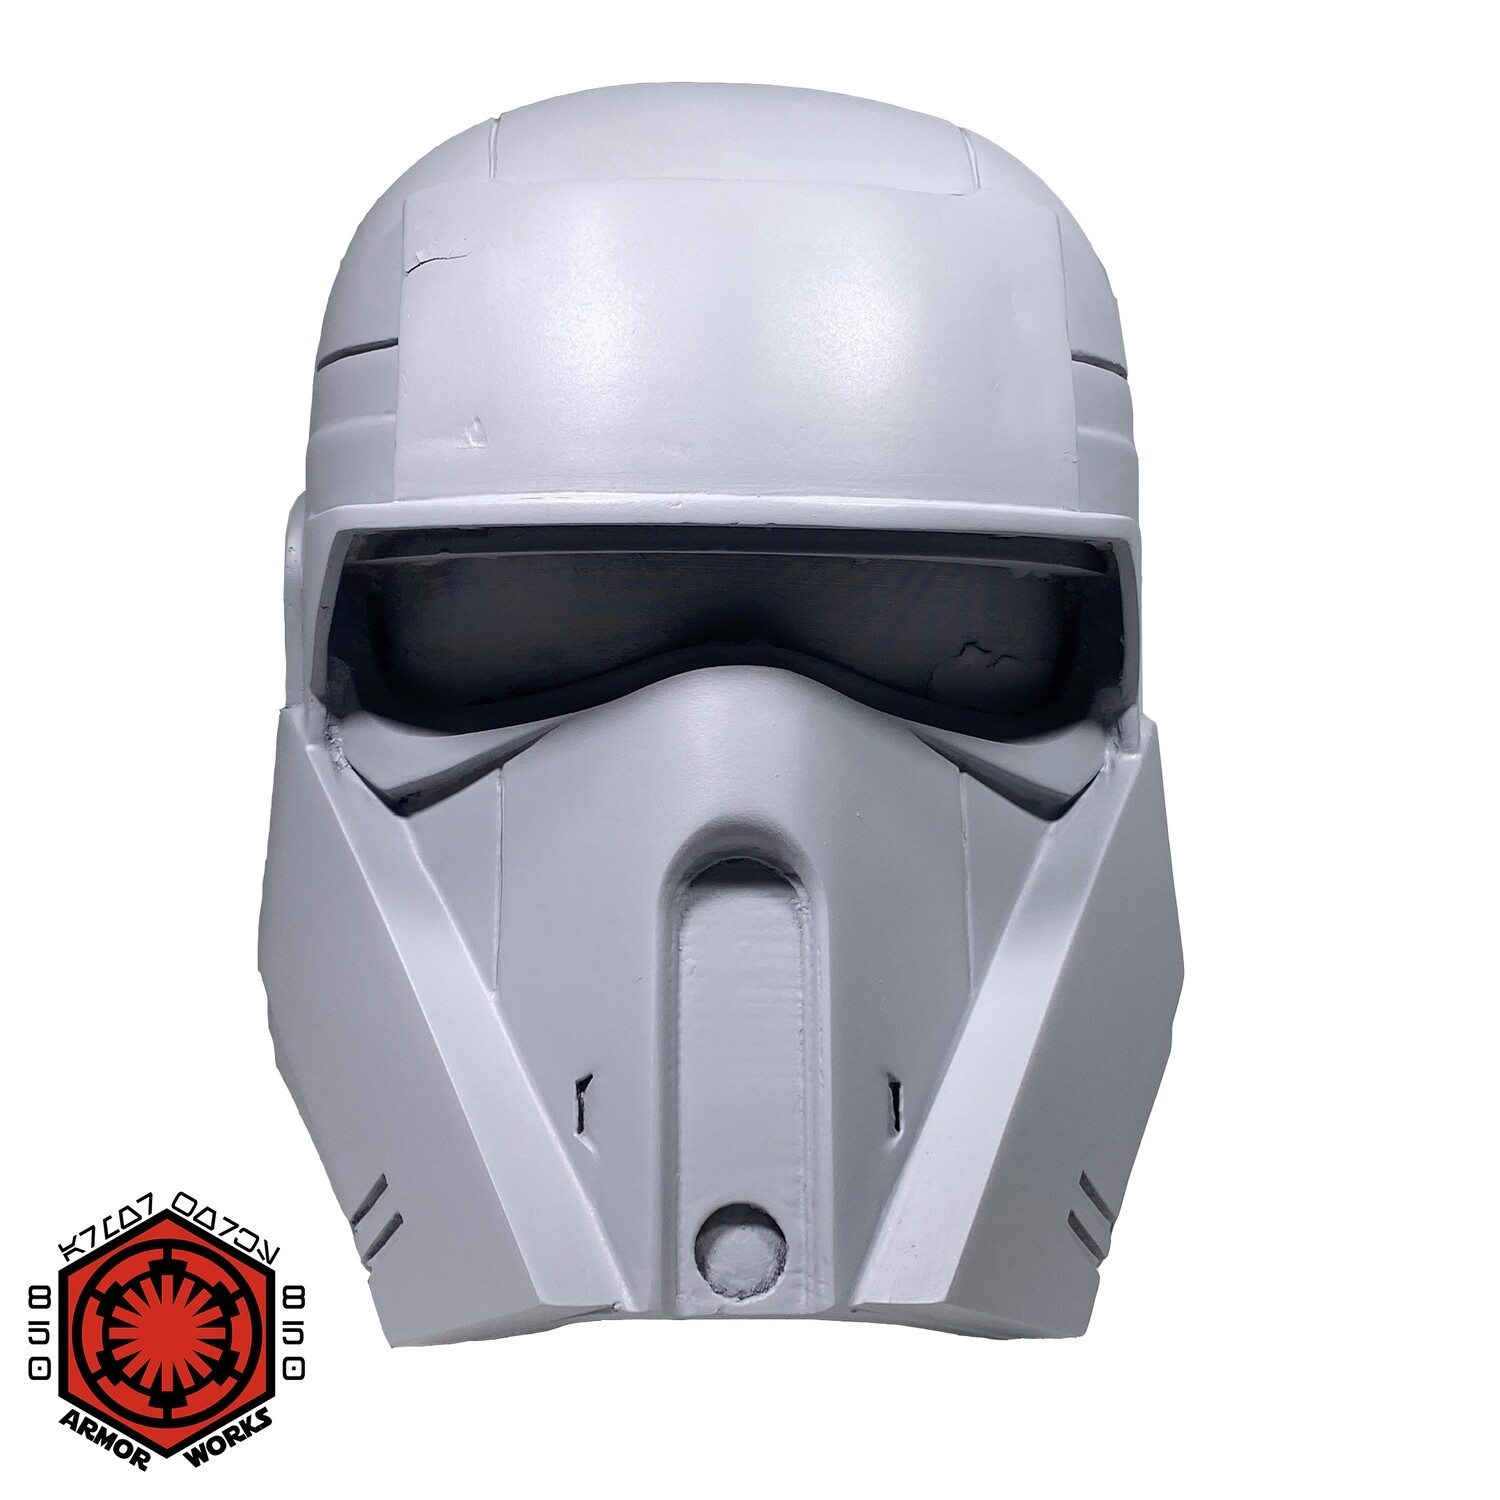 WHITE ABS SALE Shoretrooper ACT Driver Helmet Kit Rotocast Resin